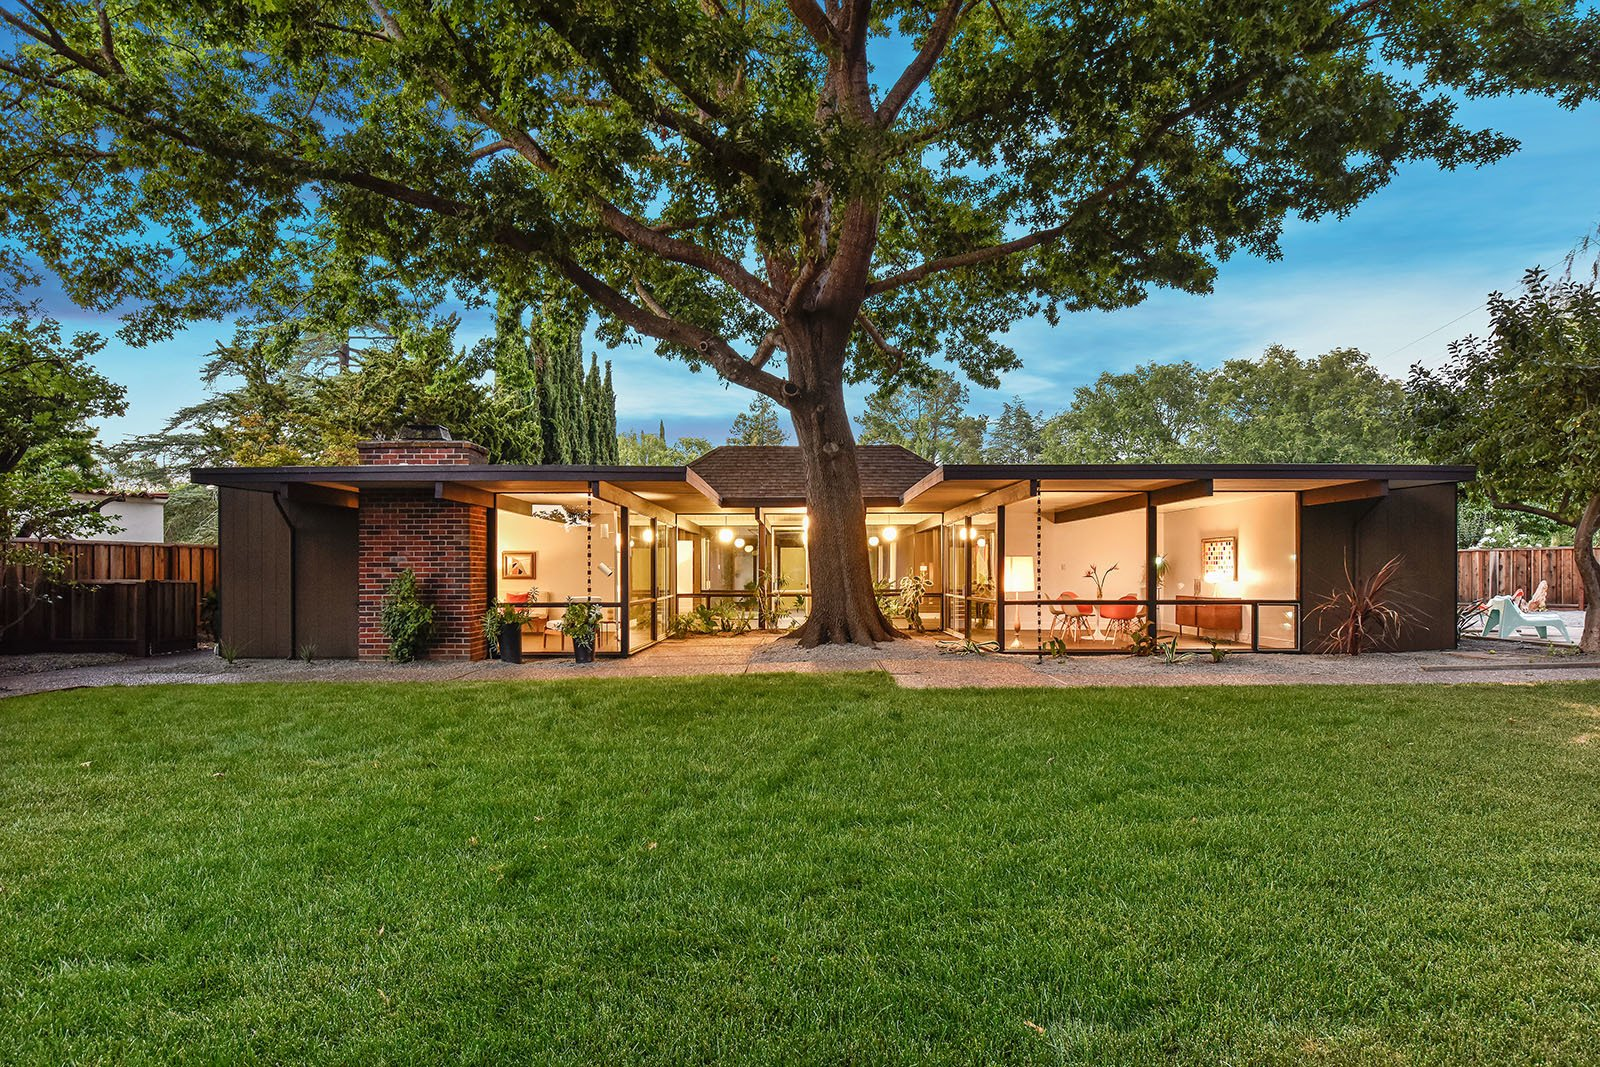 Photo 1 of 15 in An Enormous Bay Area Eichler Asks $1.45M